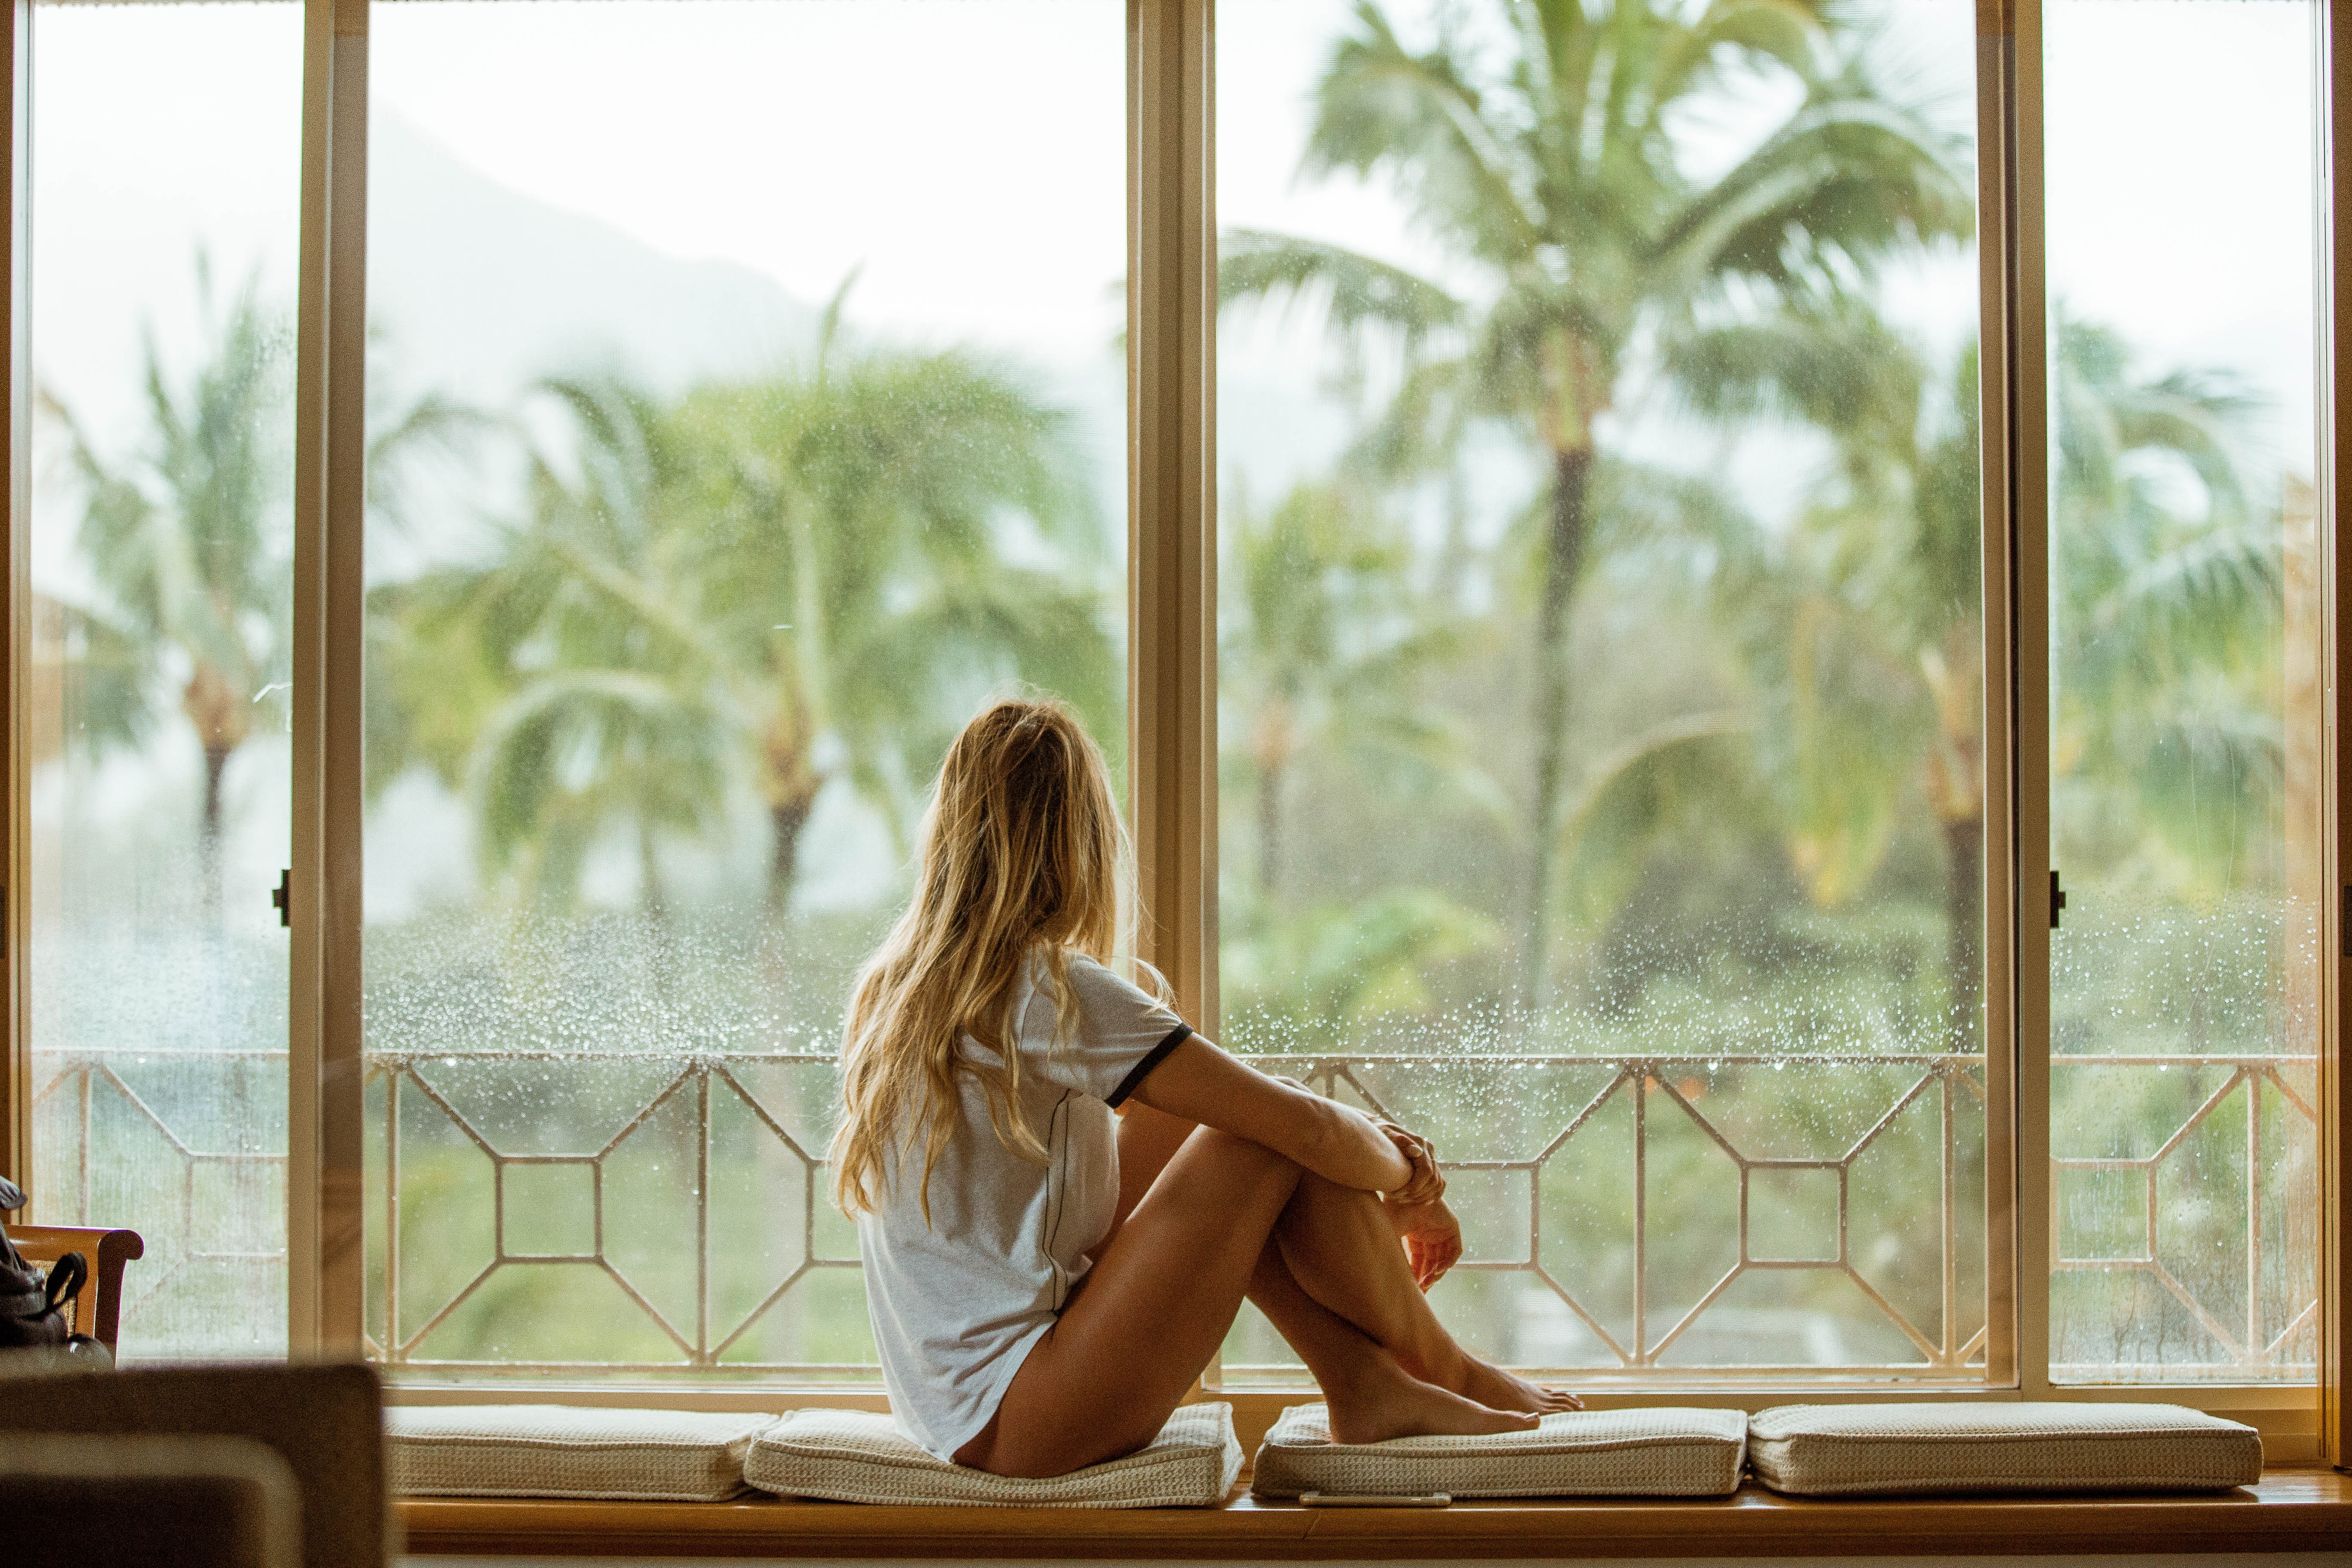 How To Choose a Detox Retreat That's Right For You